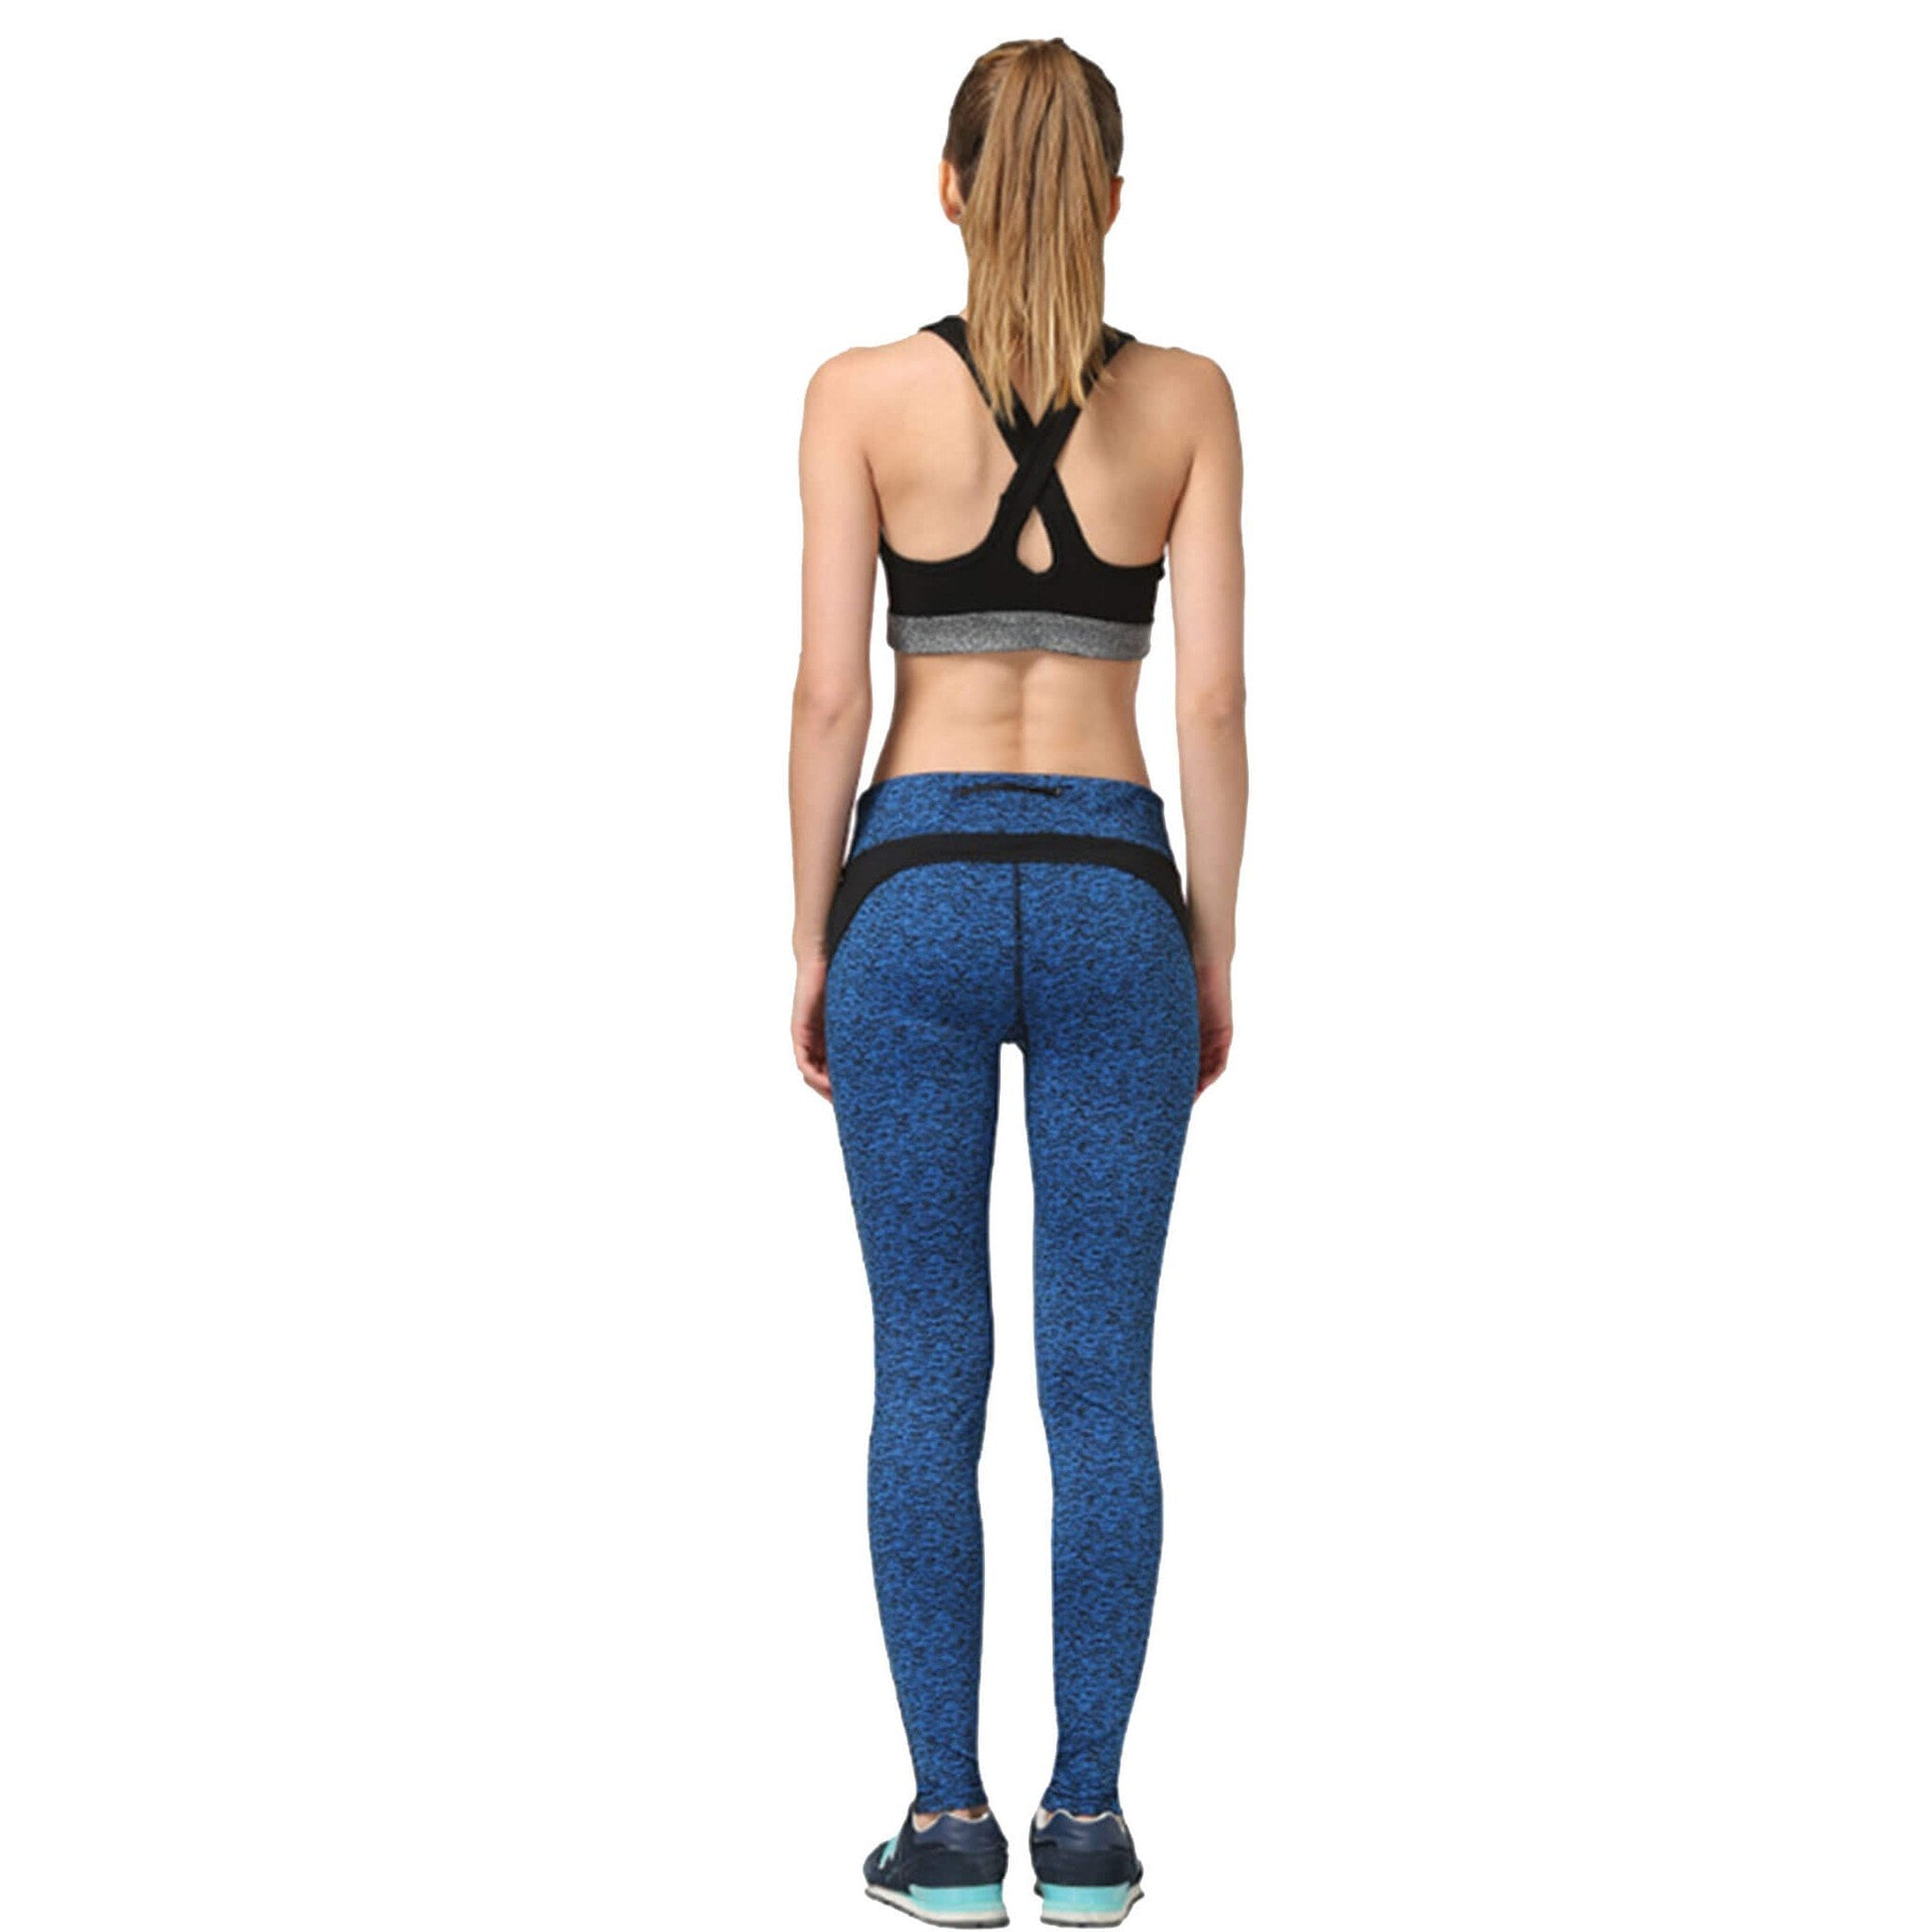 Mist Workout Slim Yoga Pants - Morgen & Ralph